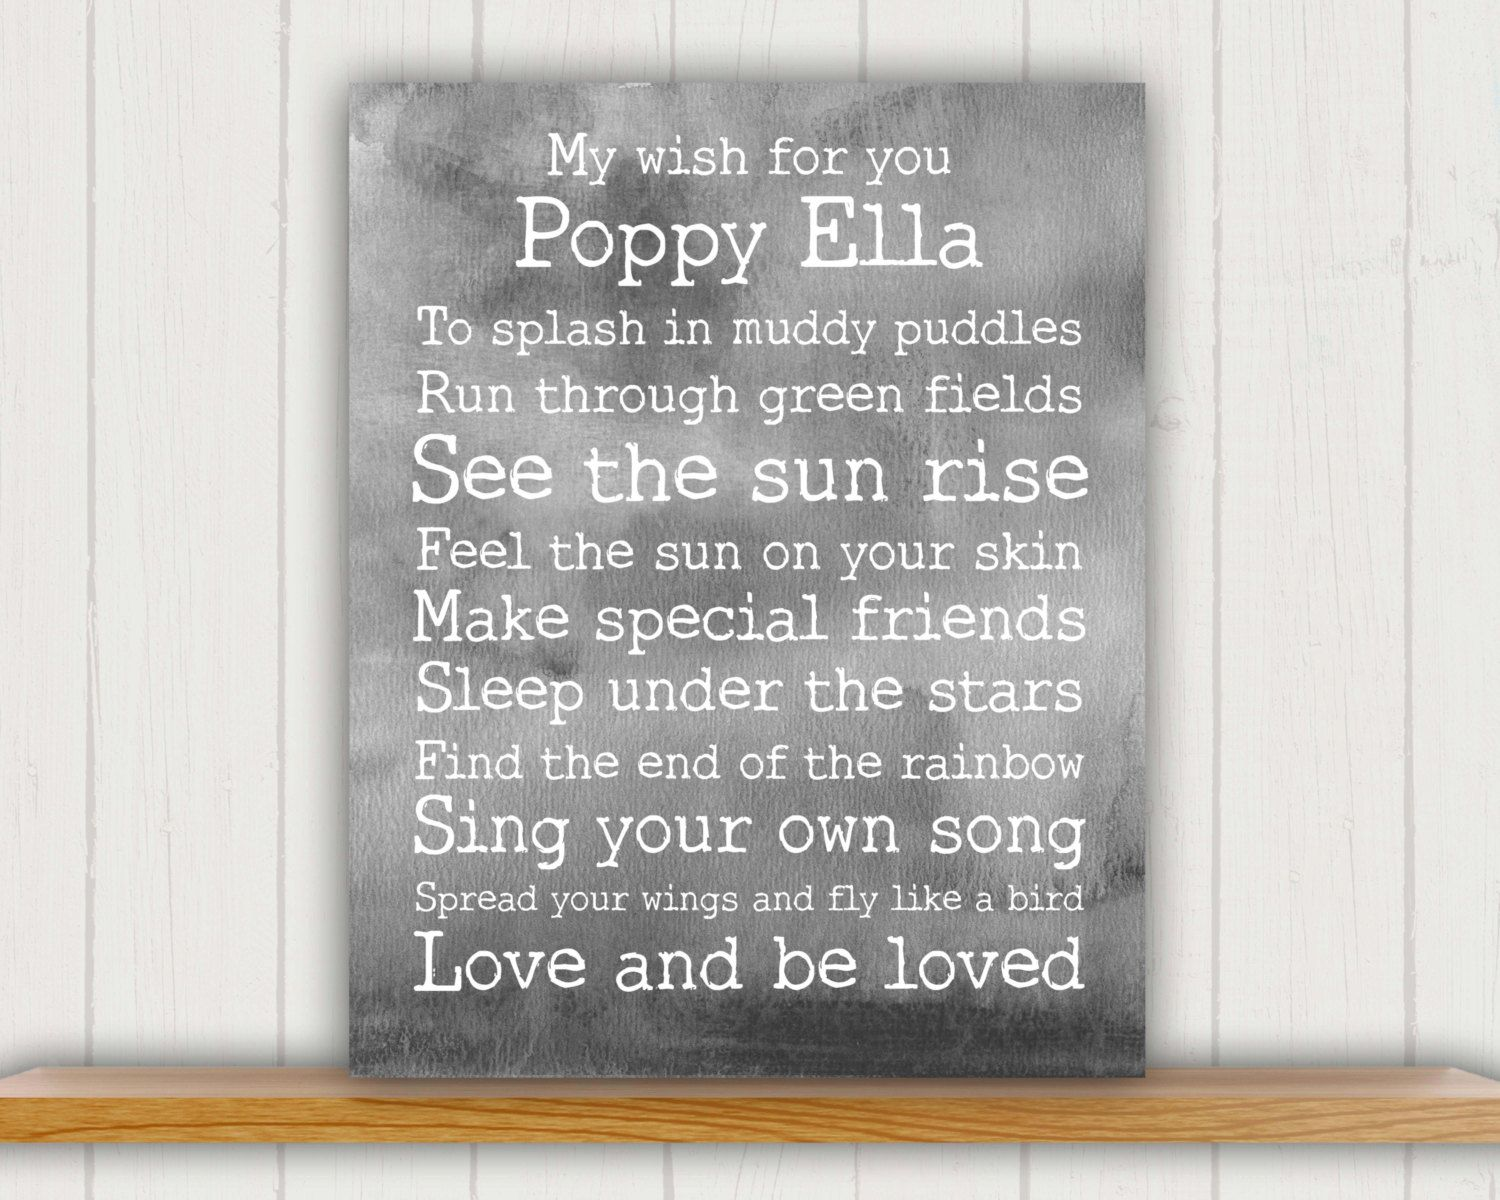 Personalized baby gift baby shower gift baby wish print baby gift personalized baby gift baby shower gift baby wish print baby gift personalized negle Choice Image